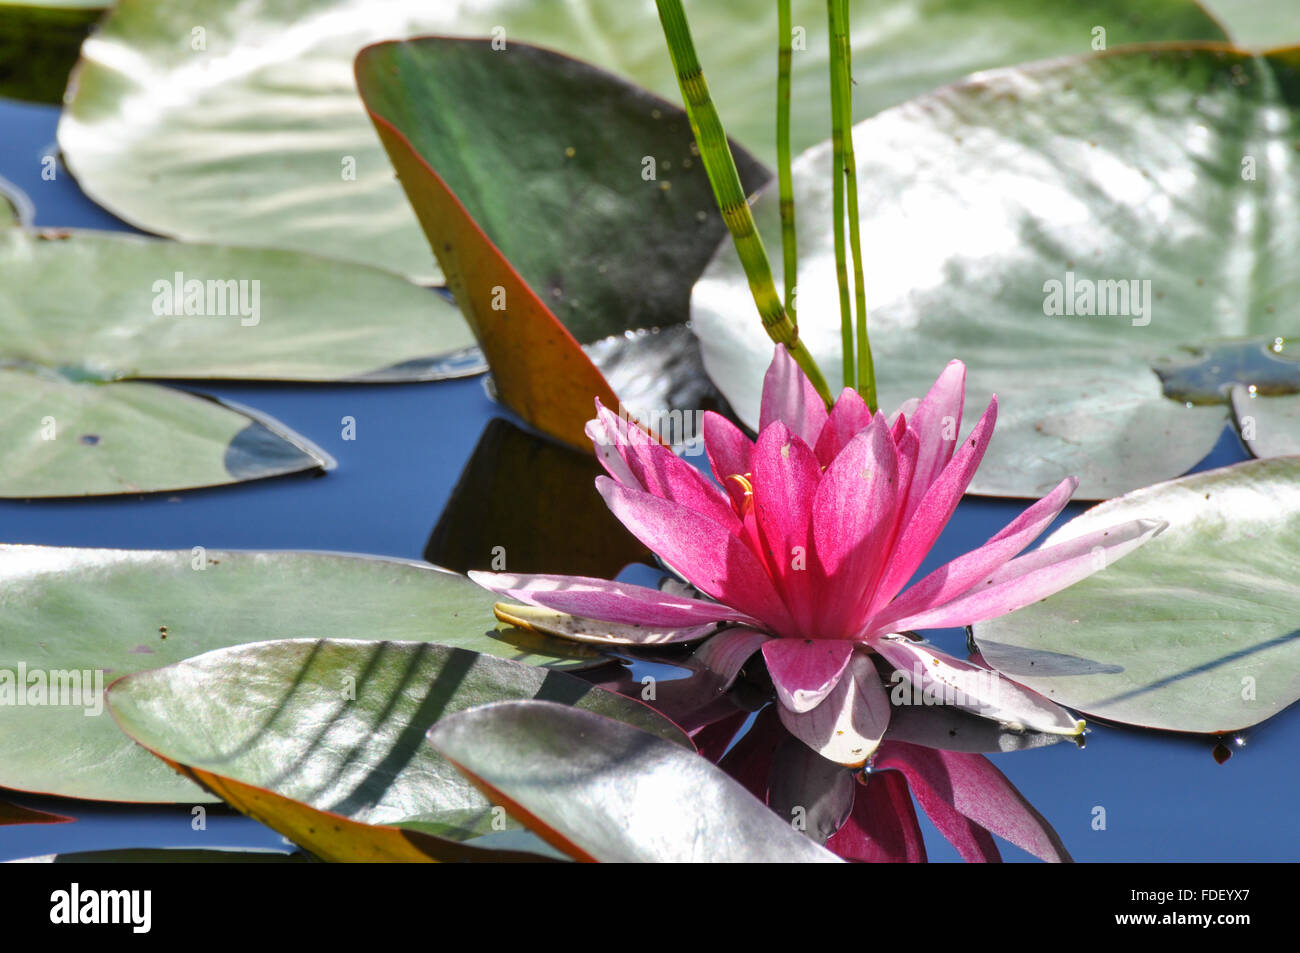 Nymphaeaceae Water Lily: Pink water lily with reflection and leaves in water. Stock Photo